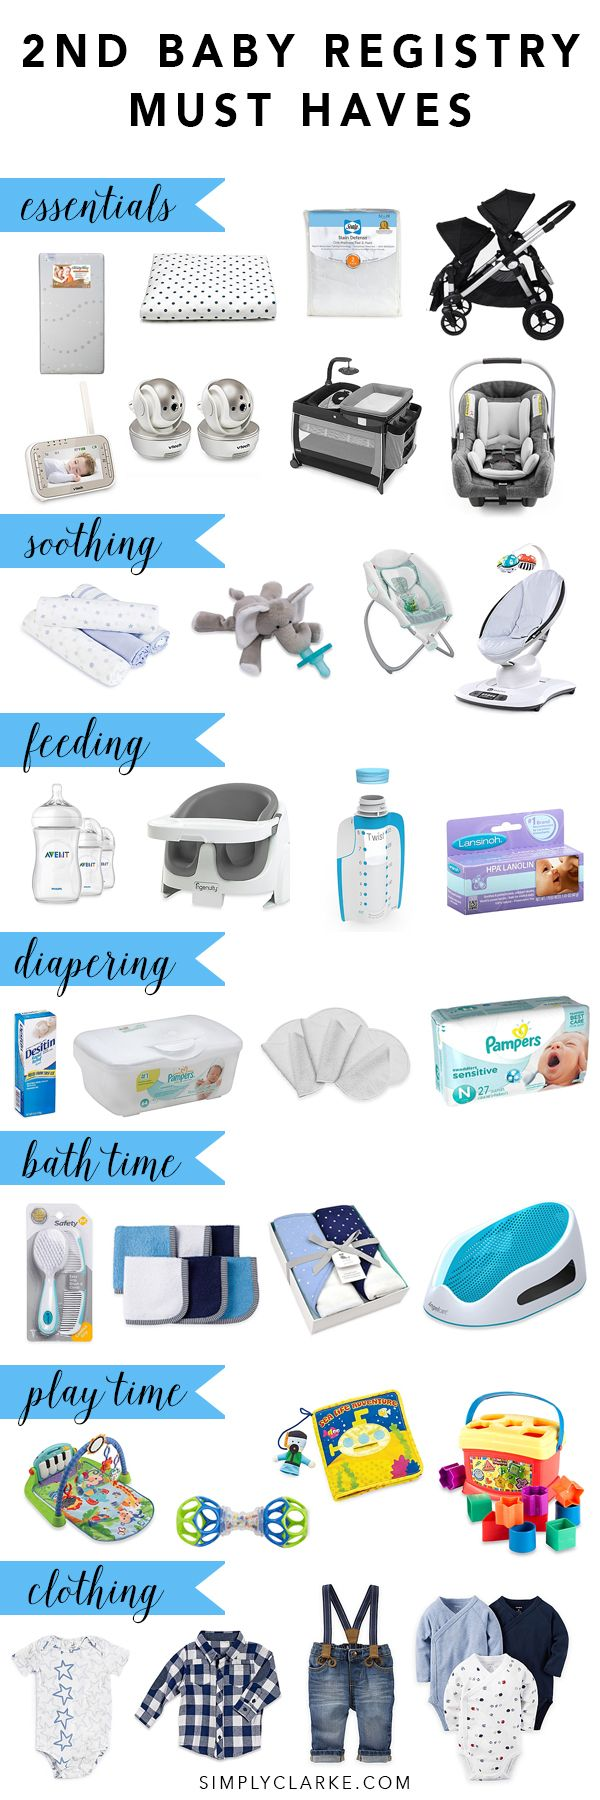 25 best ideas about baby checklist on pinterest baby needs list pregnancy hospital bag and baby list - Baby Room Checklist